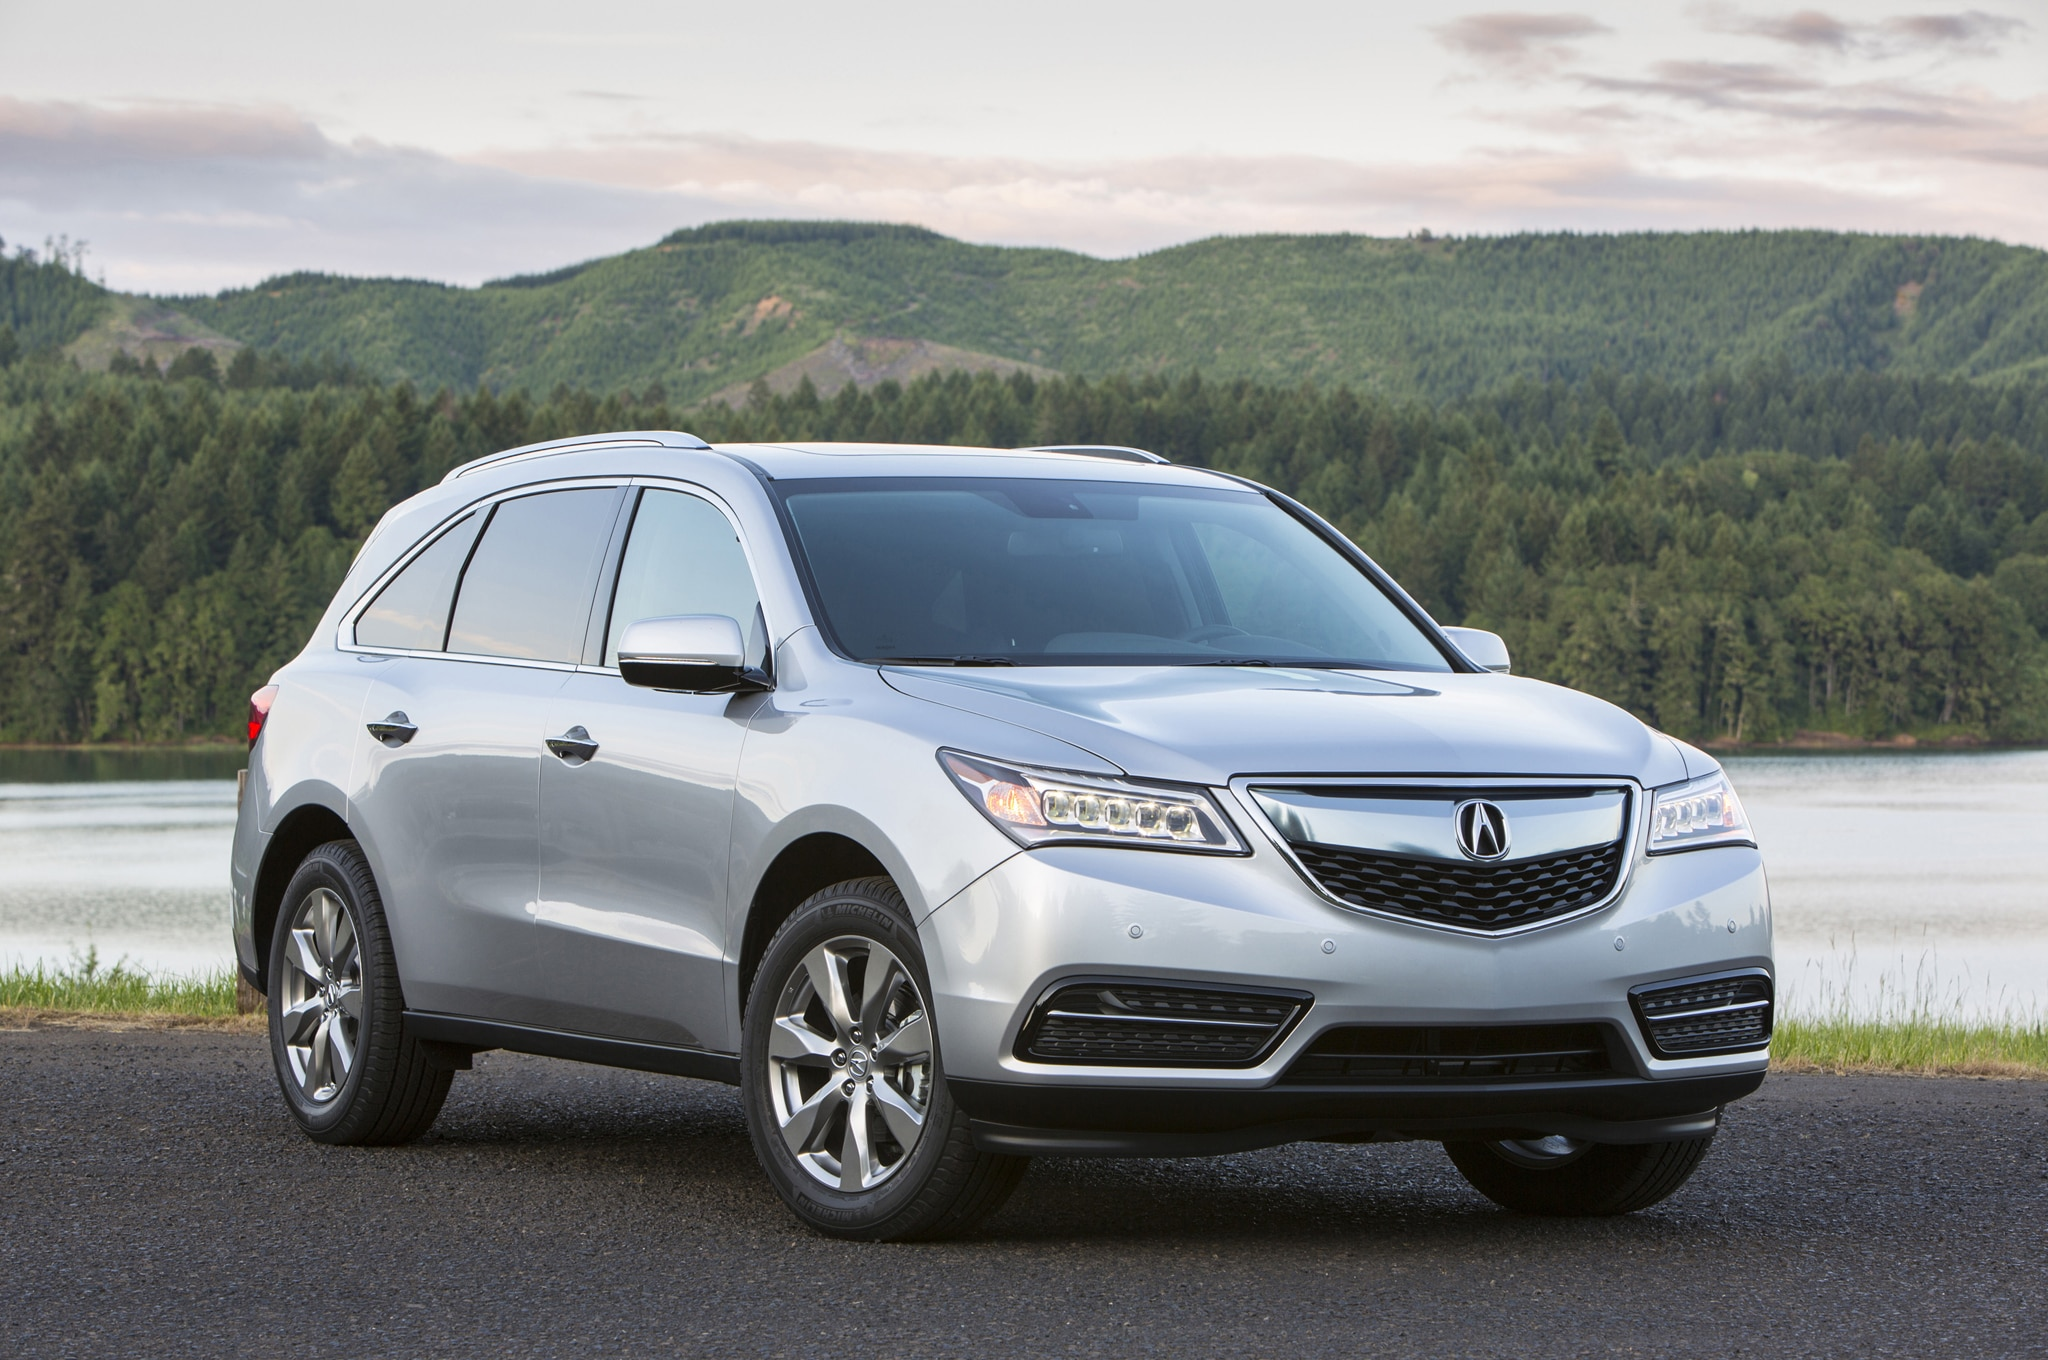 2014 Acura MDX Front Three Quarter1